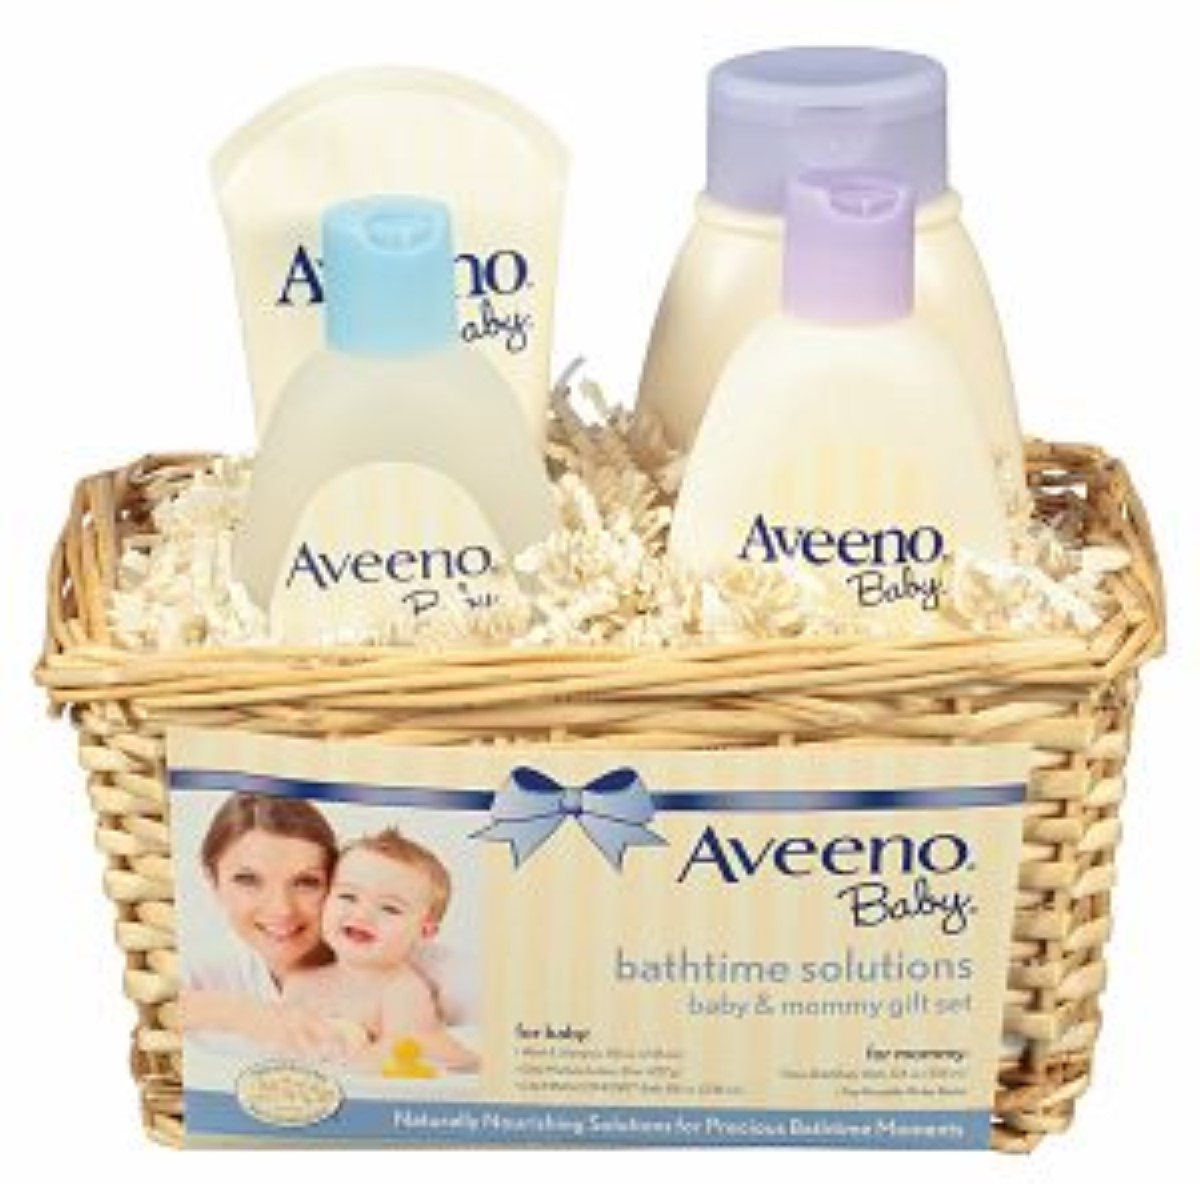 AVEENO Baby Daily Bathtime Solutions Gift Set 1 ea (Pack of 6)